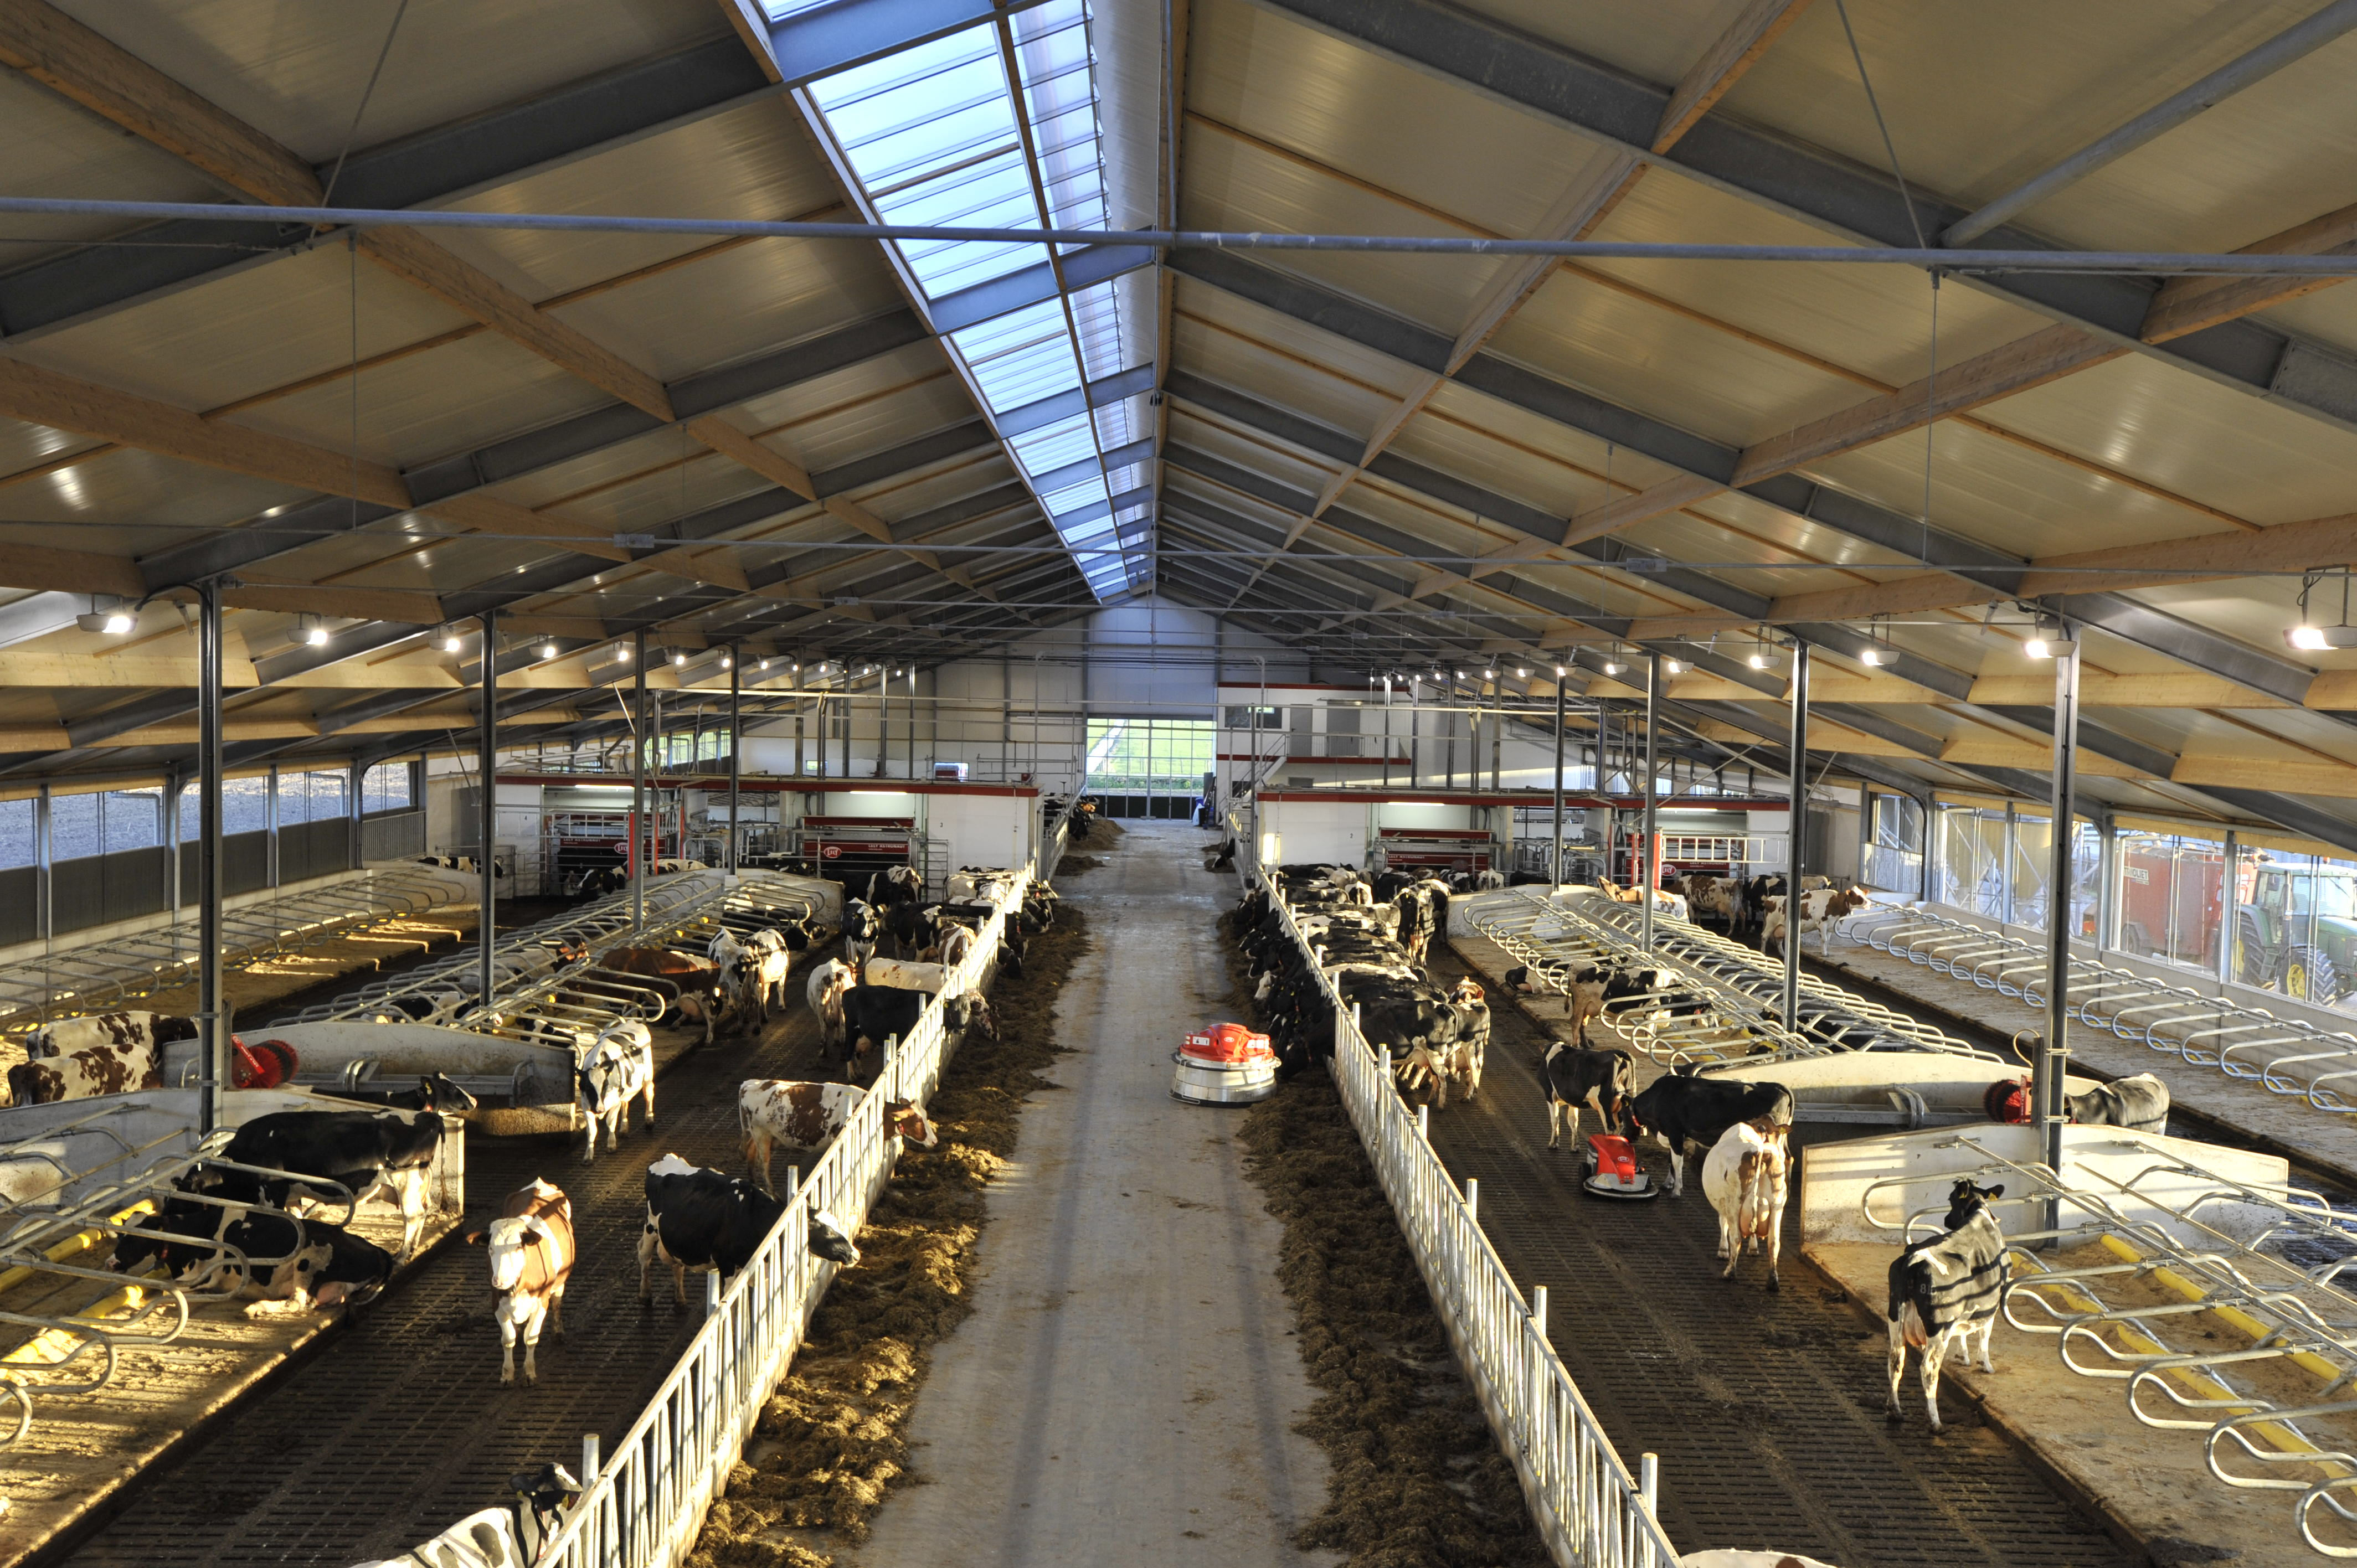 CSO1091_Entire_Barn_Overview.jpg